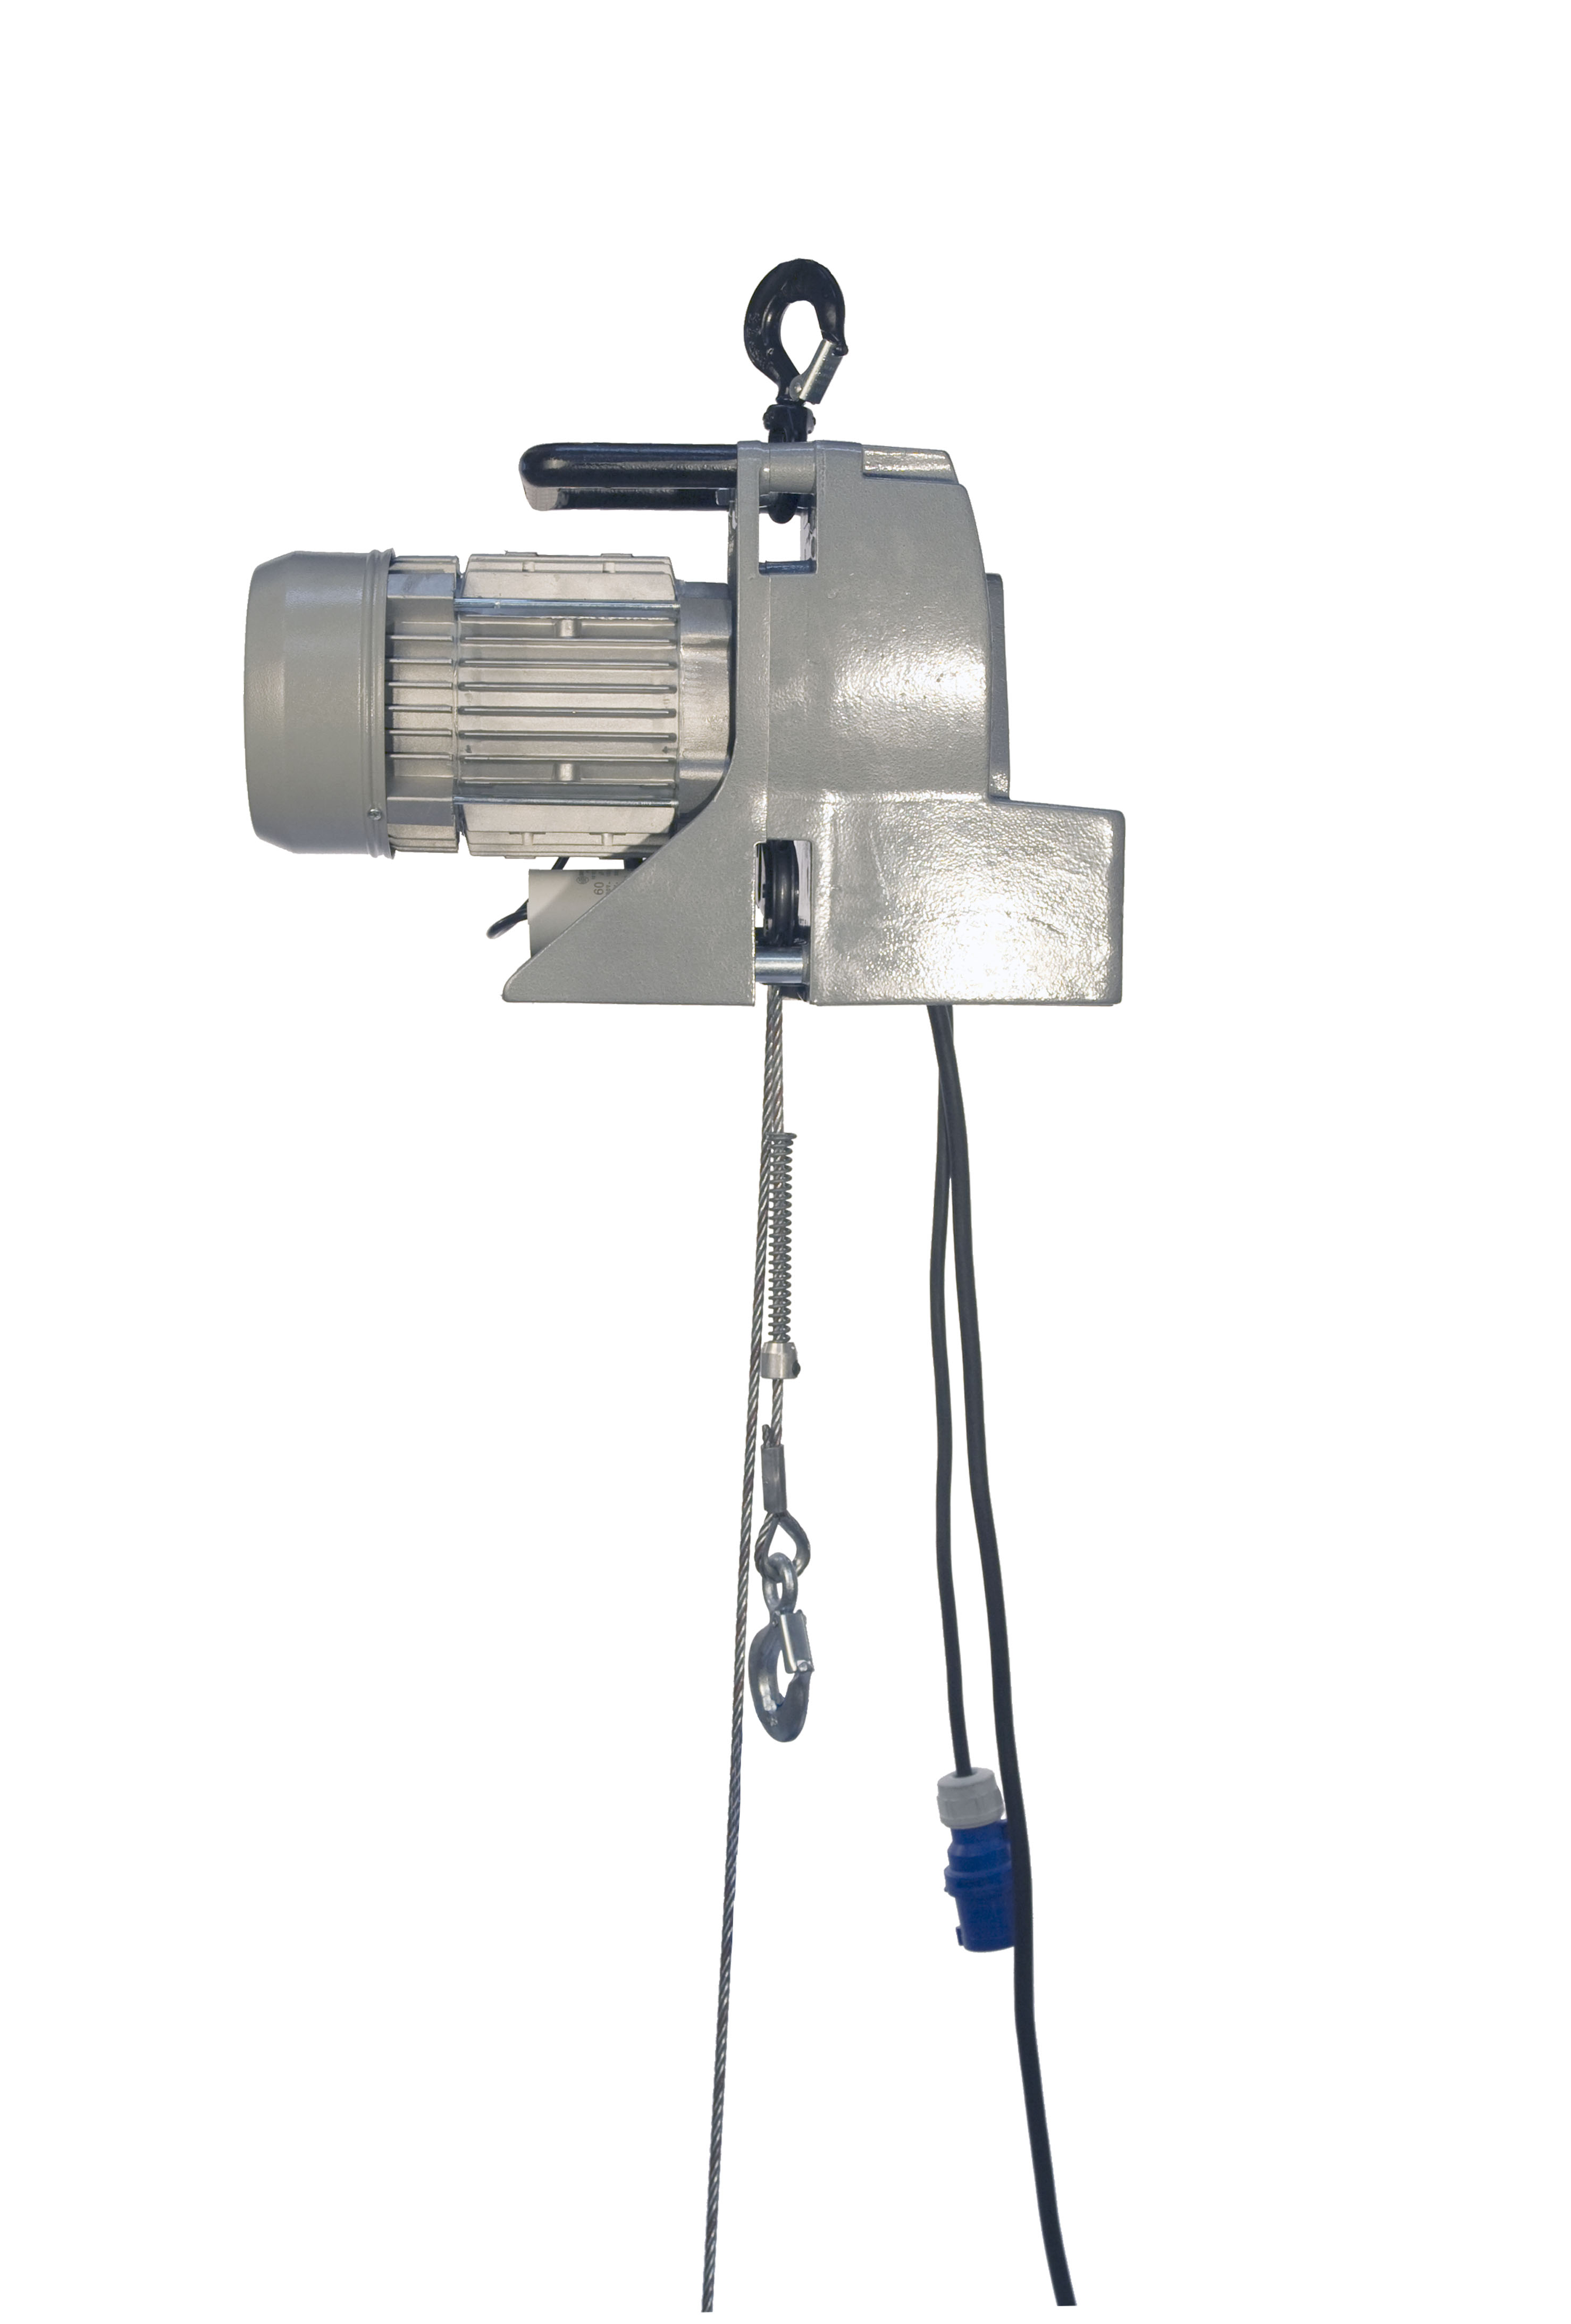 Minifor TR50 Hoist for hire or for sale